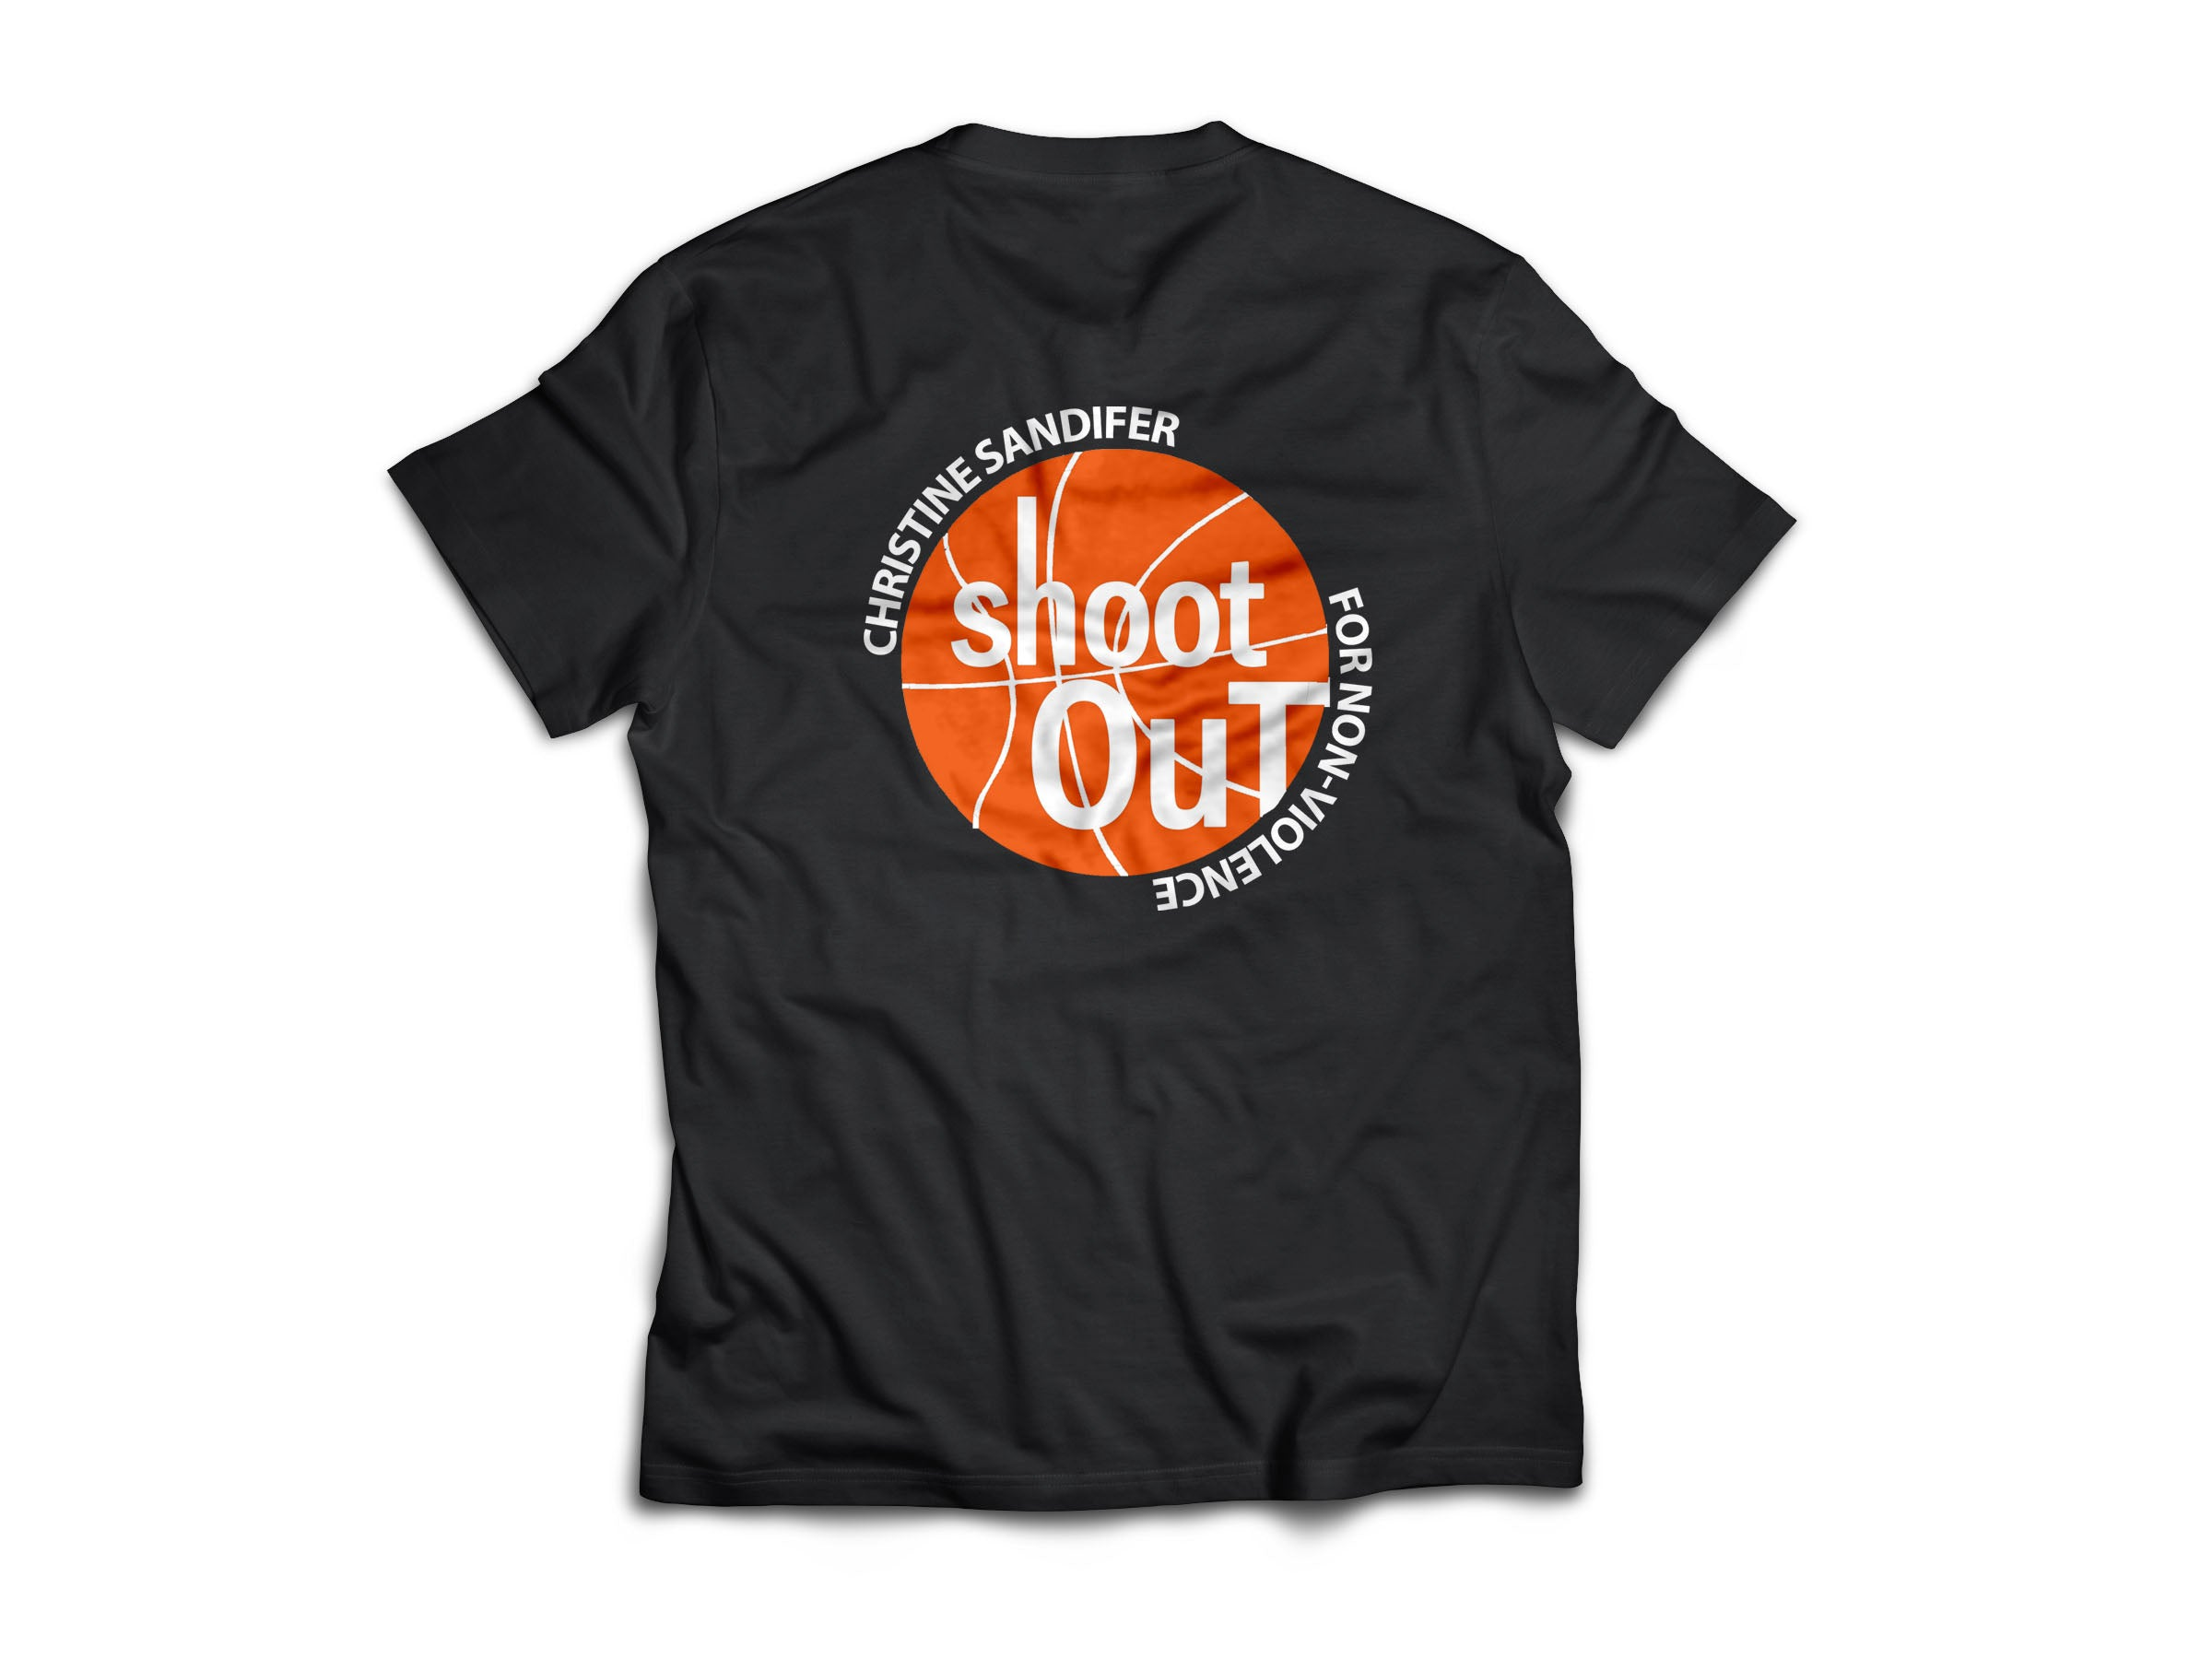 Christine Sandifer Shoot Out For Non-Violence Tournament T-Shirt